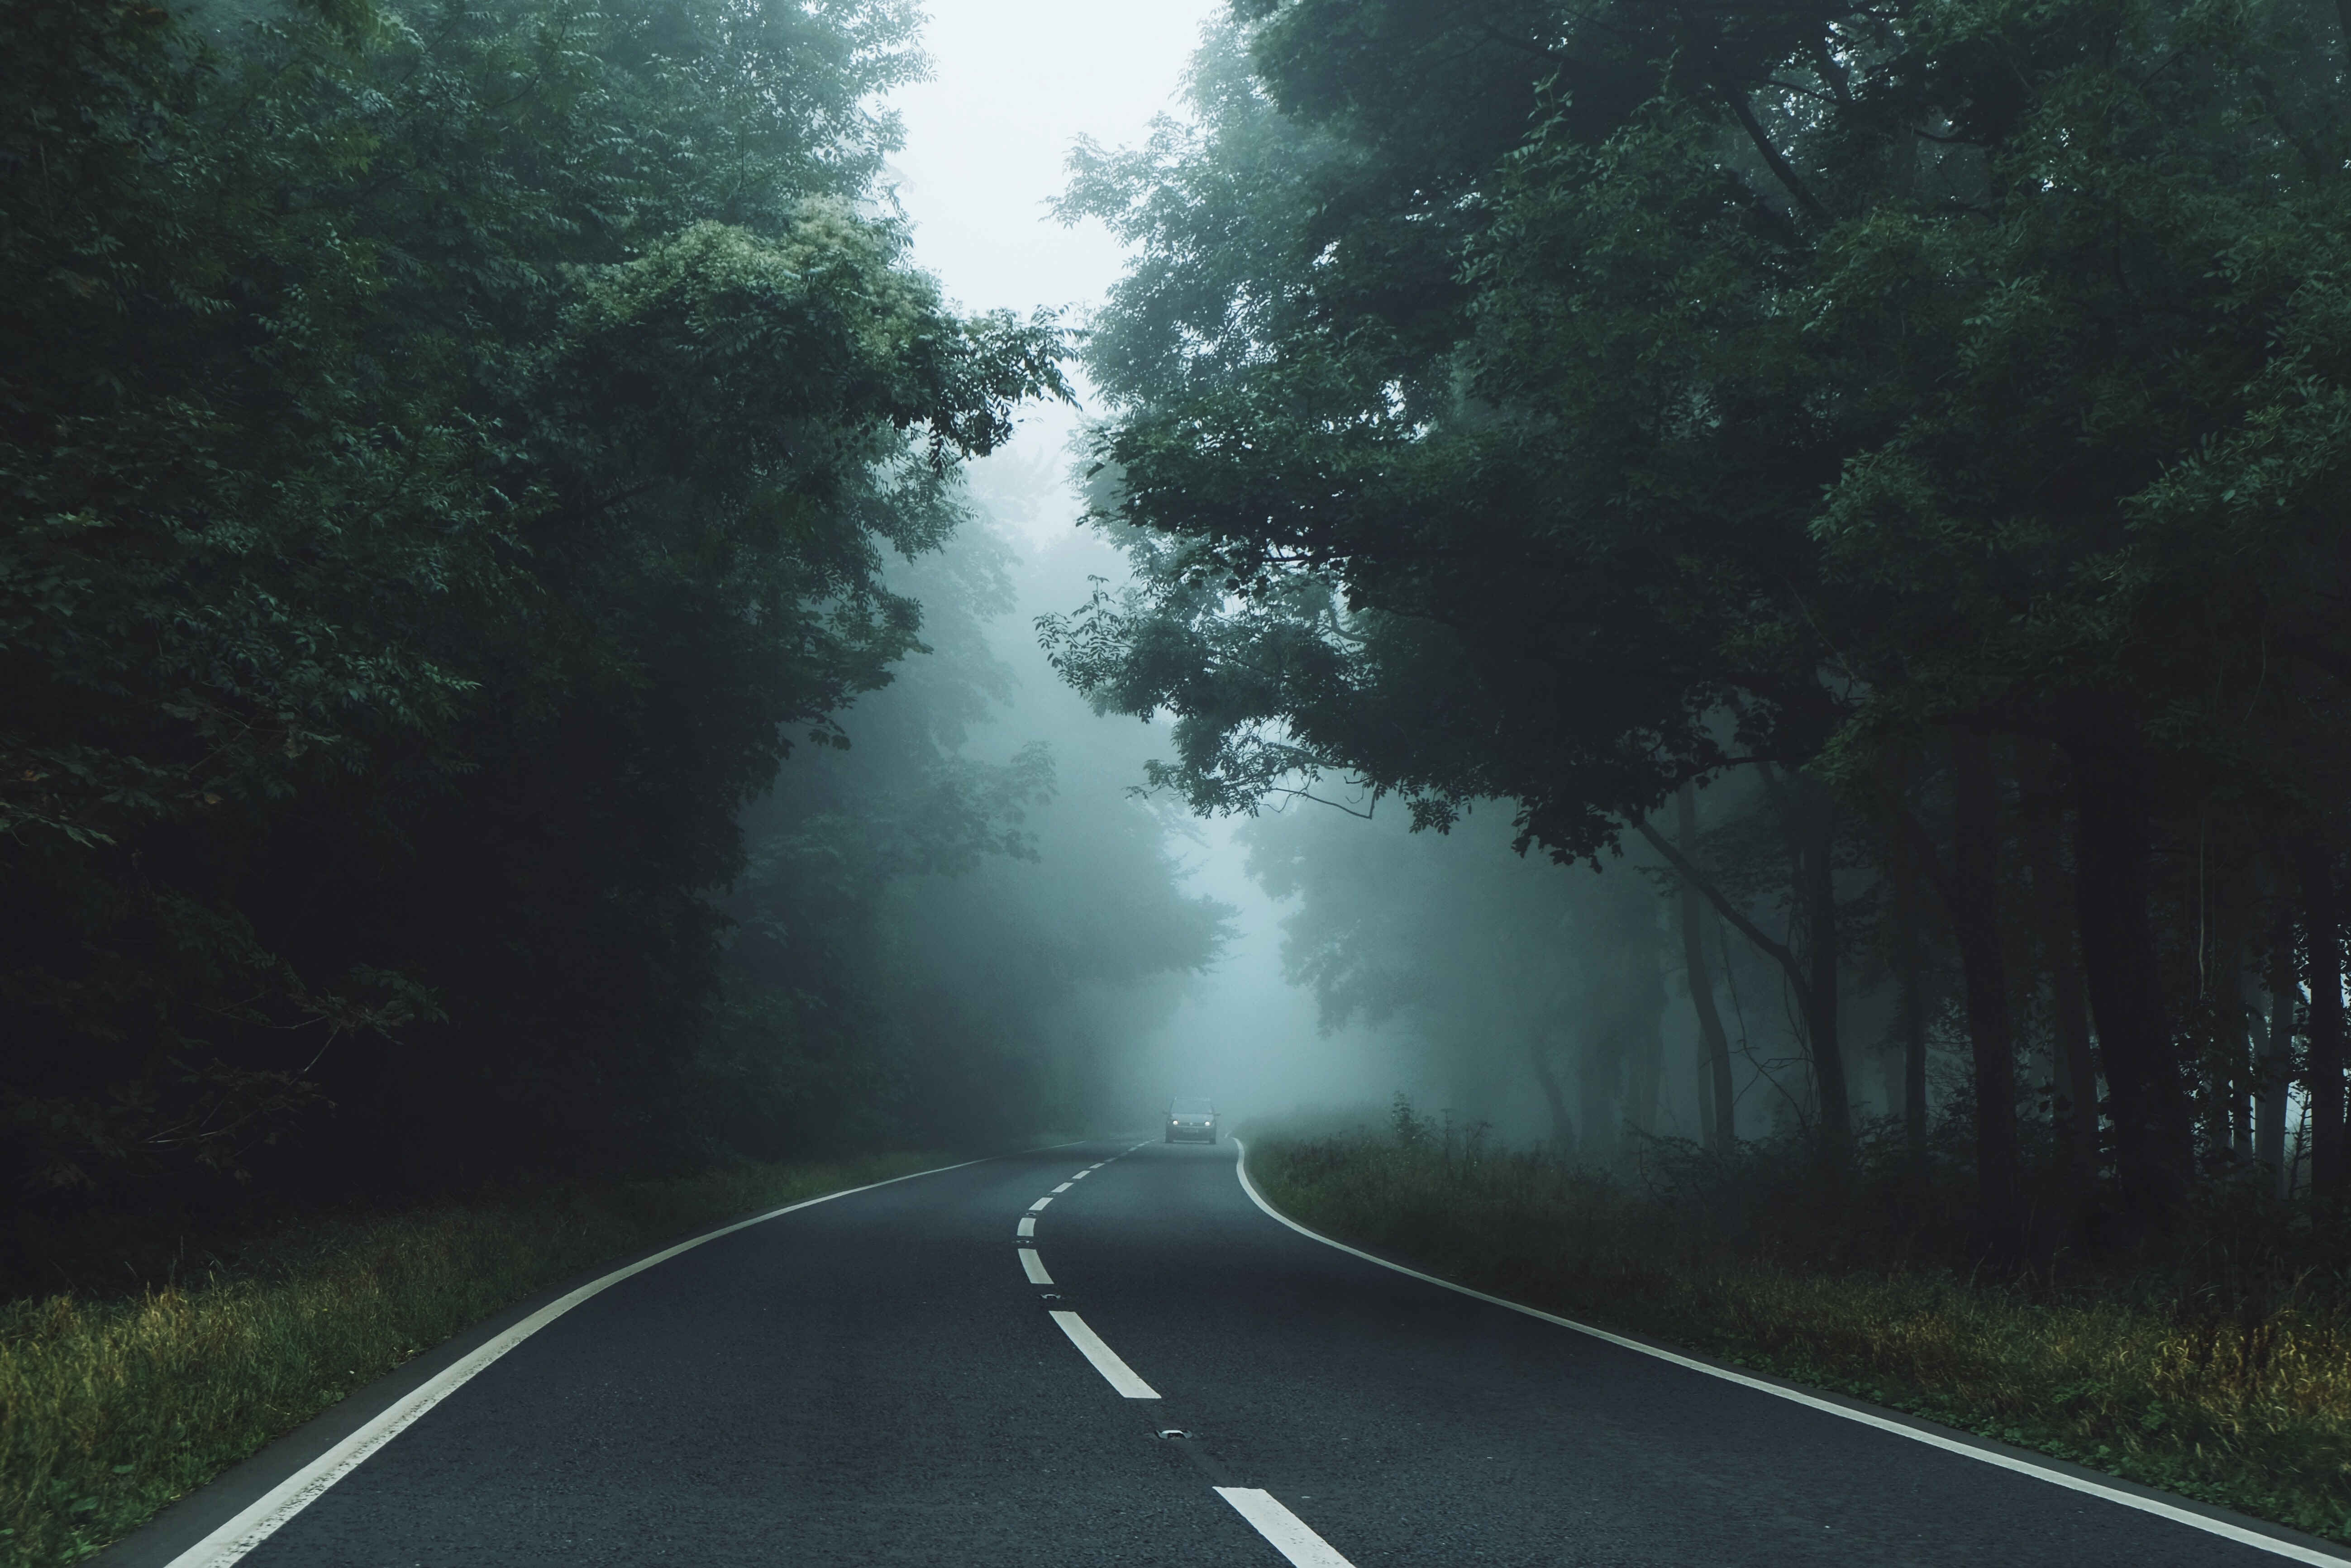 An empty road in a forest on a foggy day.